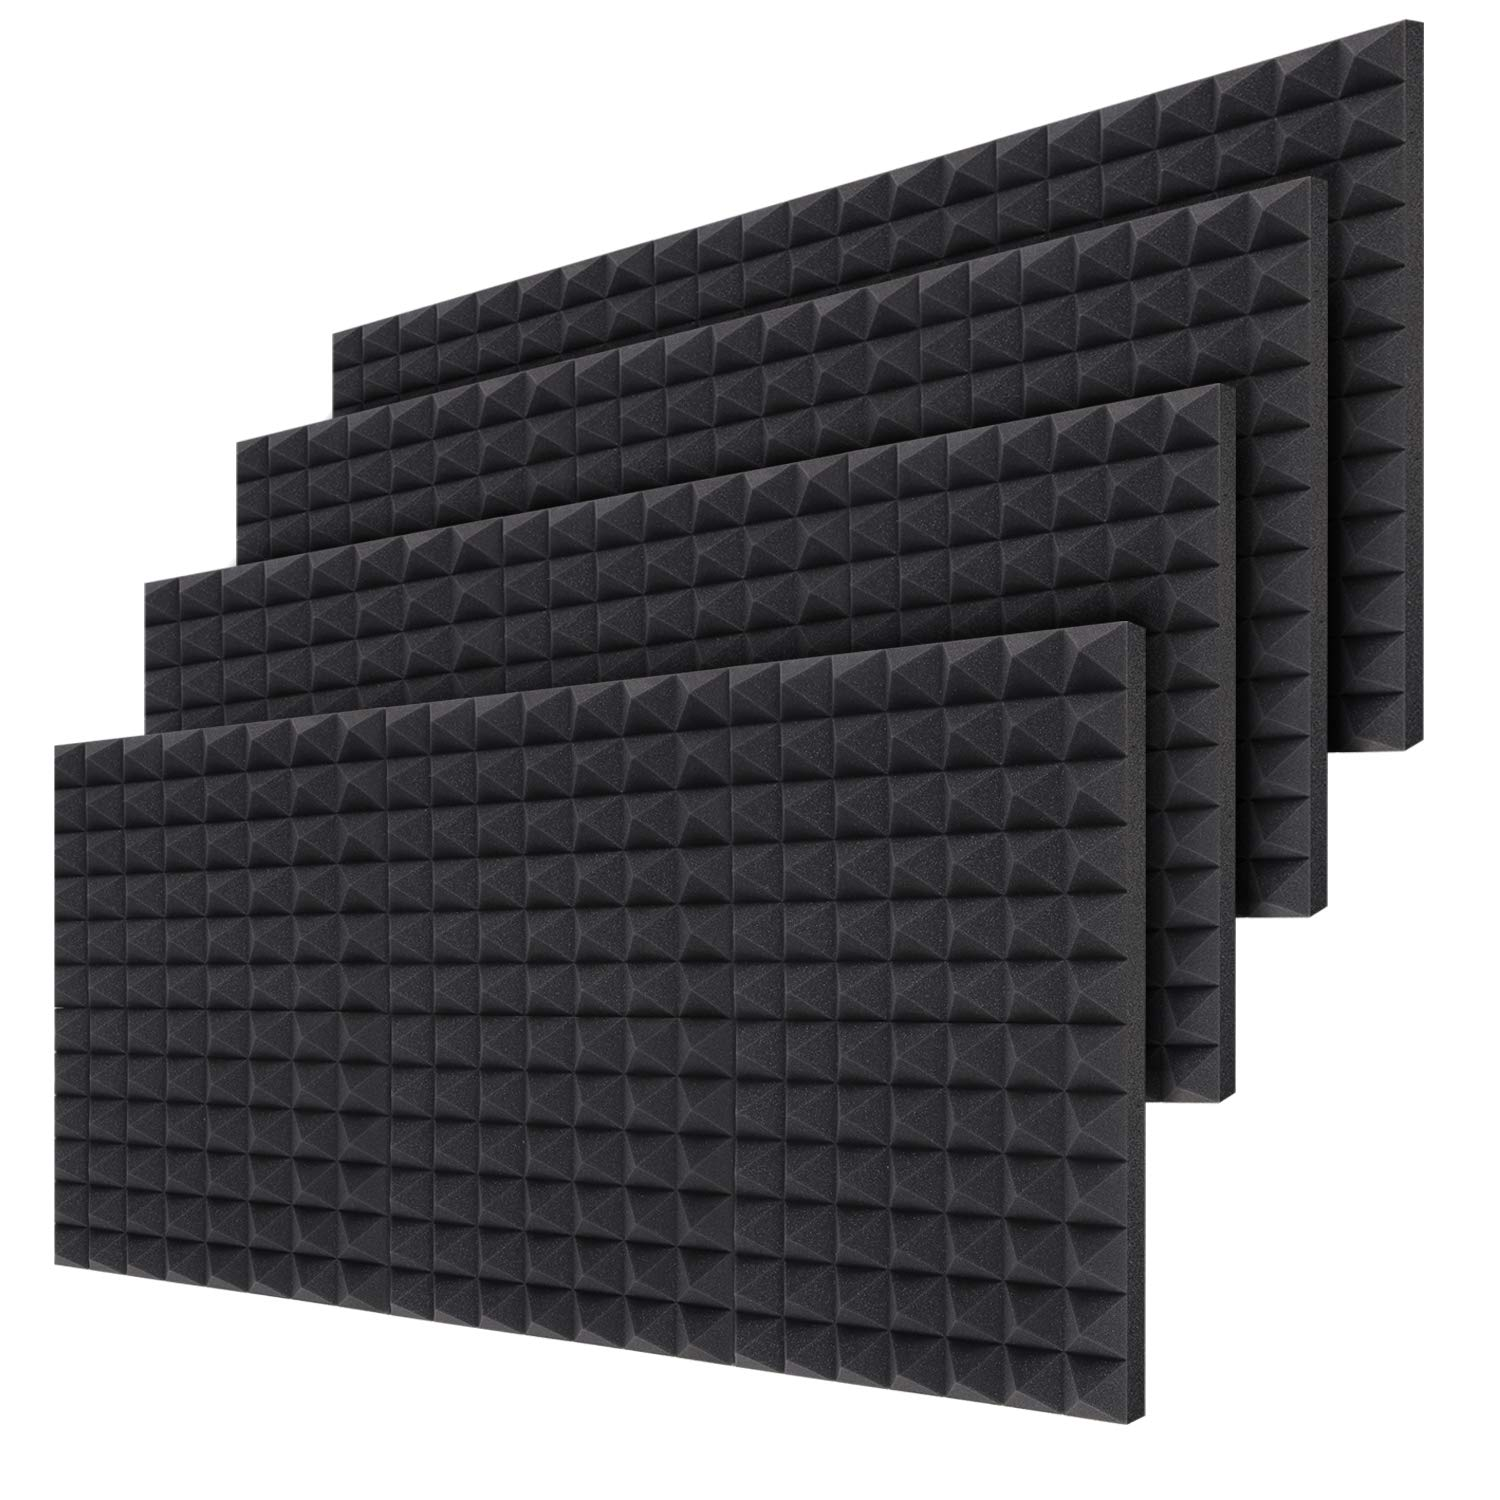 Acoustic Foam Panels 24-Pack 2'' X 12'' X 16'', Ohuhu Sound Absorbing Dampening Wall Foam Pyramid 2 Inch Acoustic Treatment